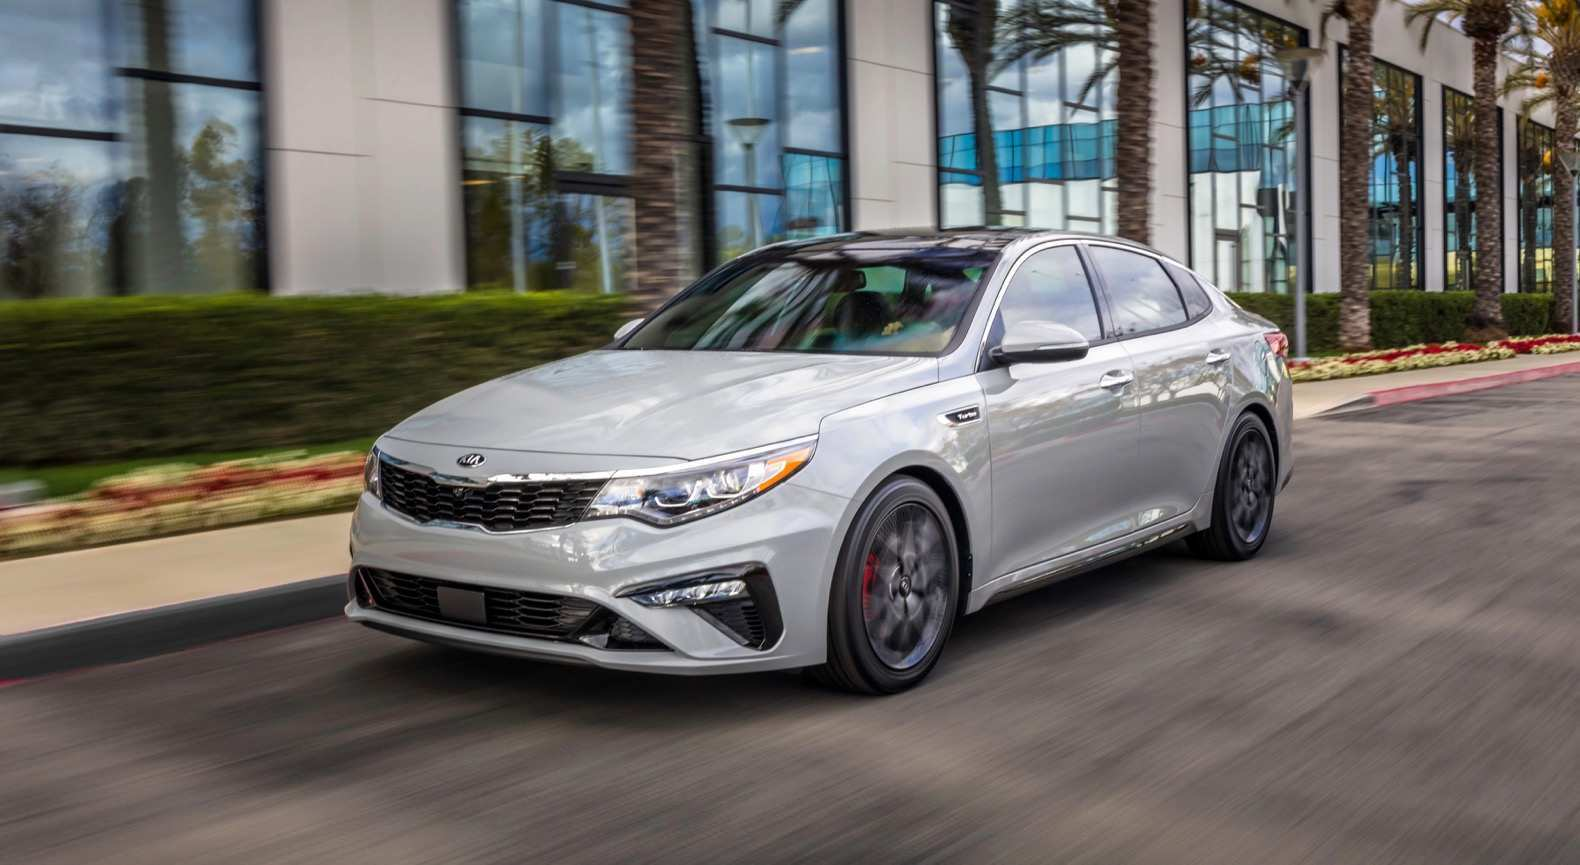 75 Great Kia Optima 2019 Facelift Photos for Kia Optima 2019 Facelift